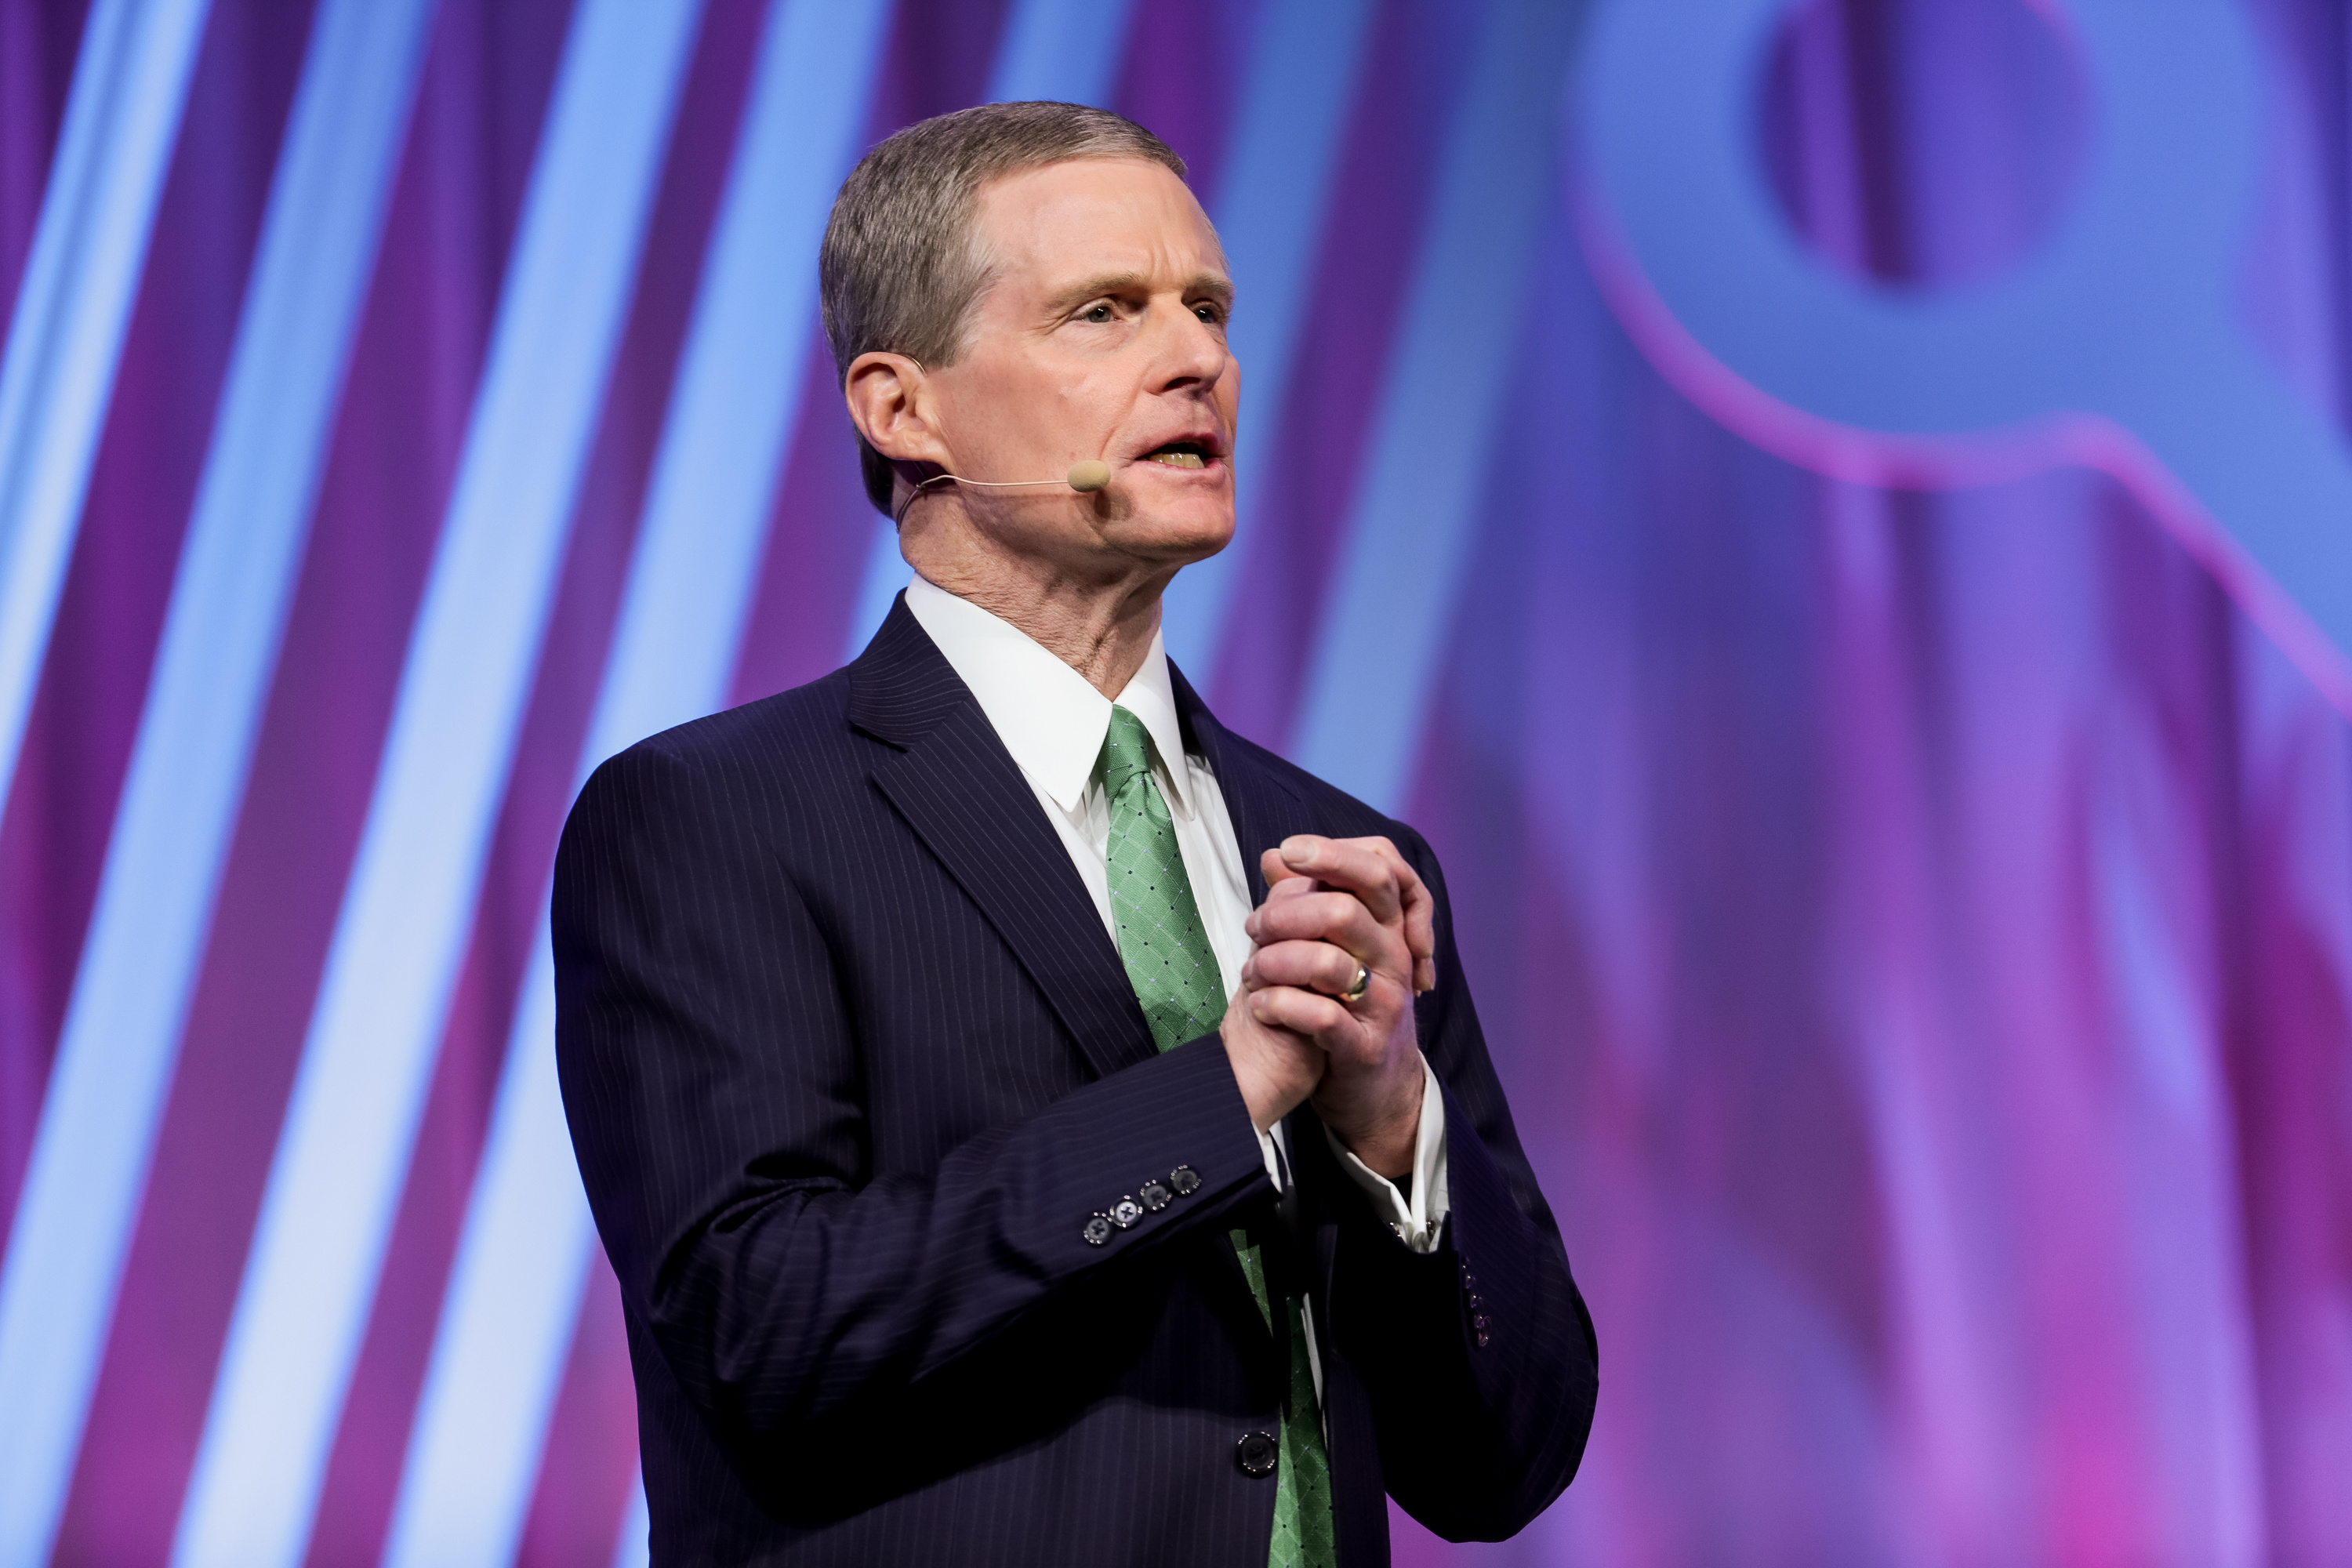 Elder David A. Bednar of the Quorum of the Twelve Apostles speaks during the RootsTech conference at the Salt Palace in Salt Lake City on Saturday, March 2, 2019.